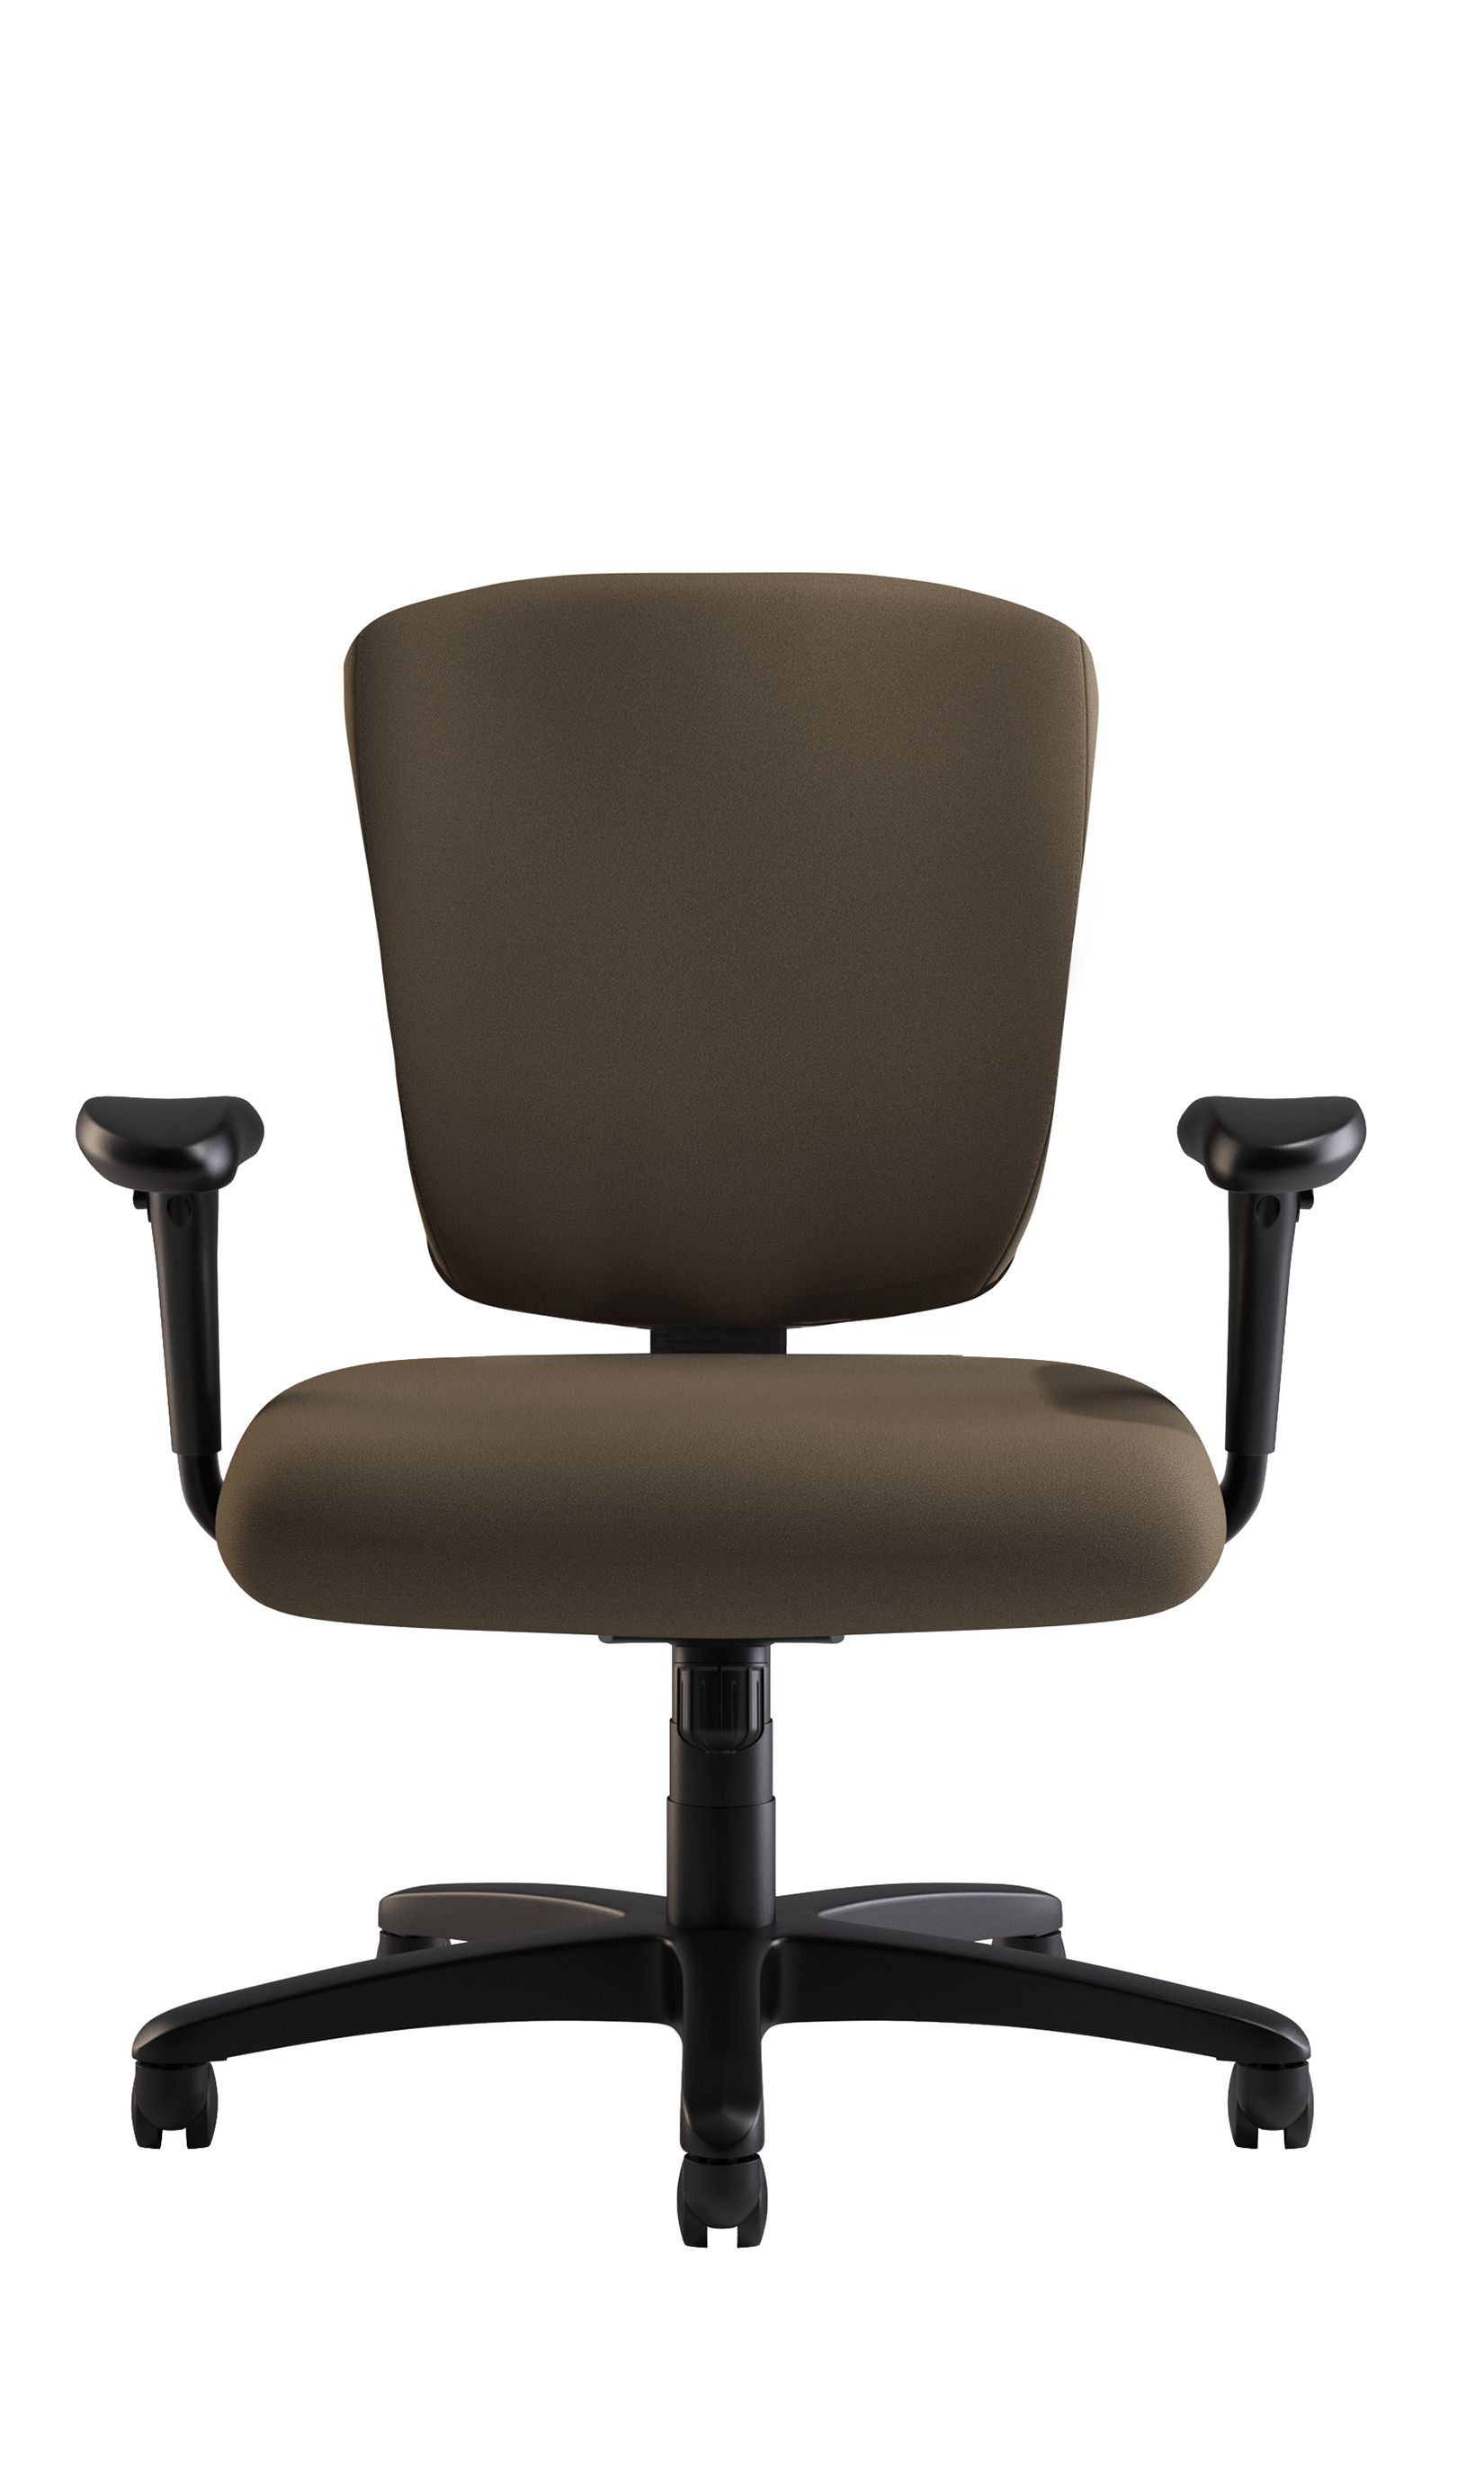 via office chairs. Via Seating Offers Our Brisbane HD 24/7 Task Chair With Mid Or High Back Office Chairs